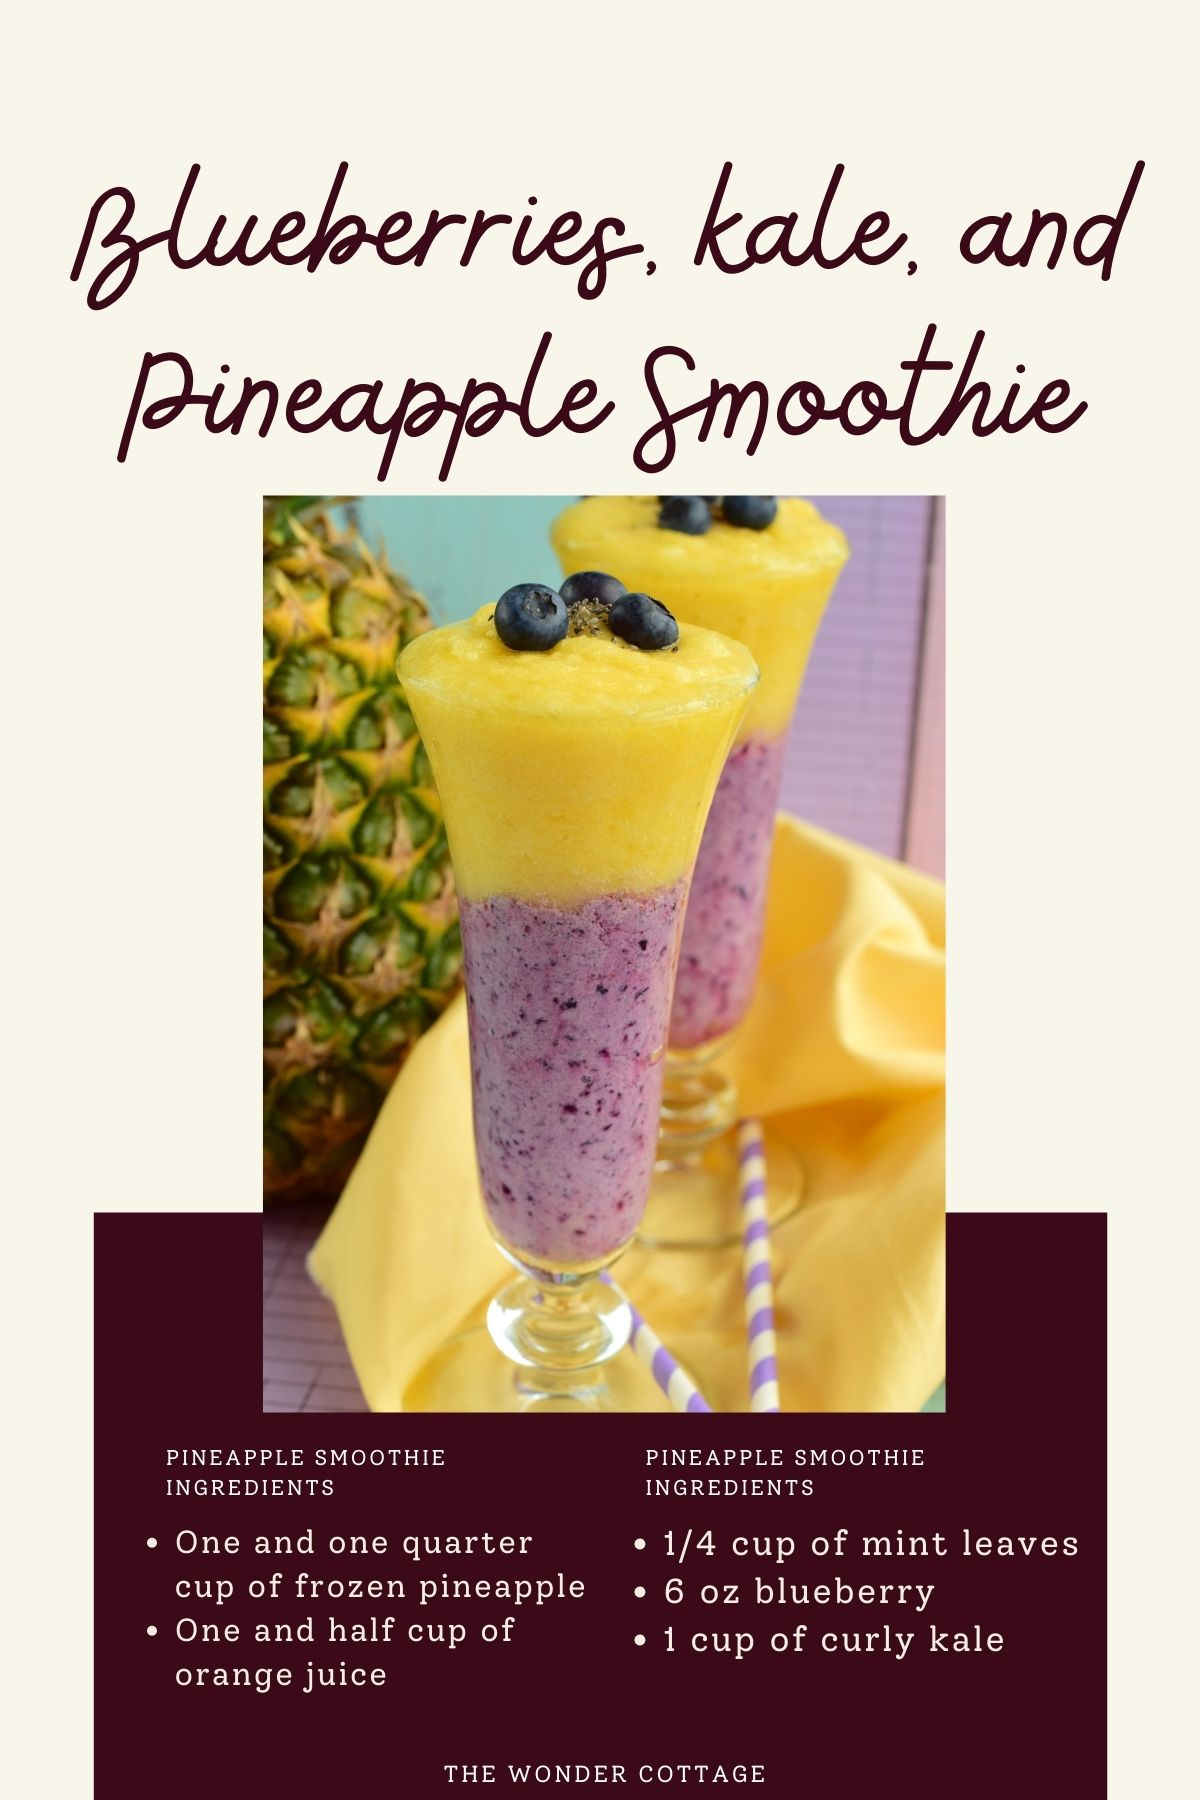 Blueberries, kale, and pineapple smoothie